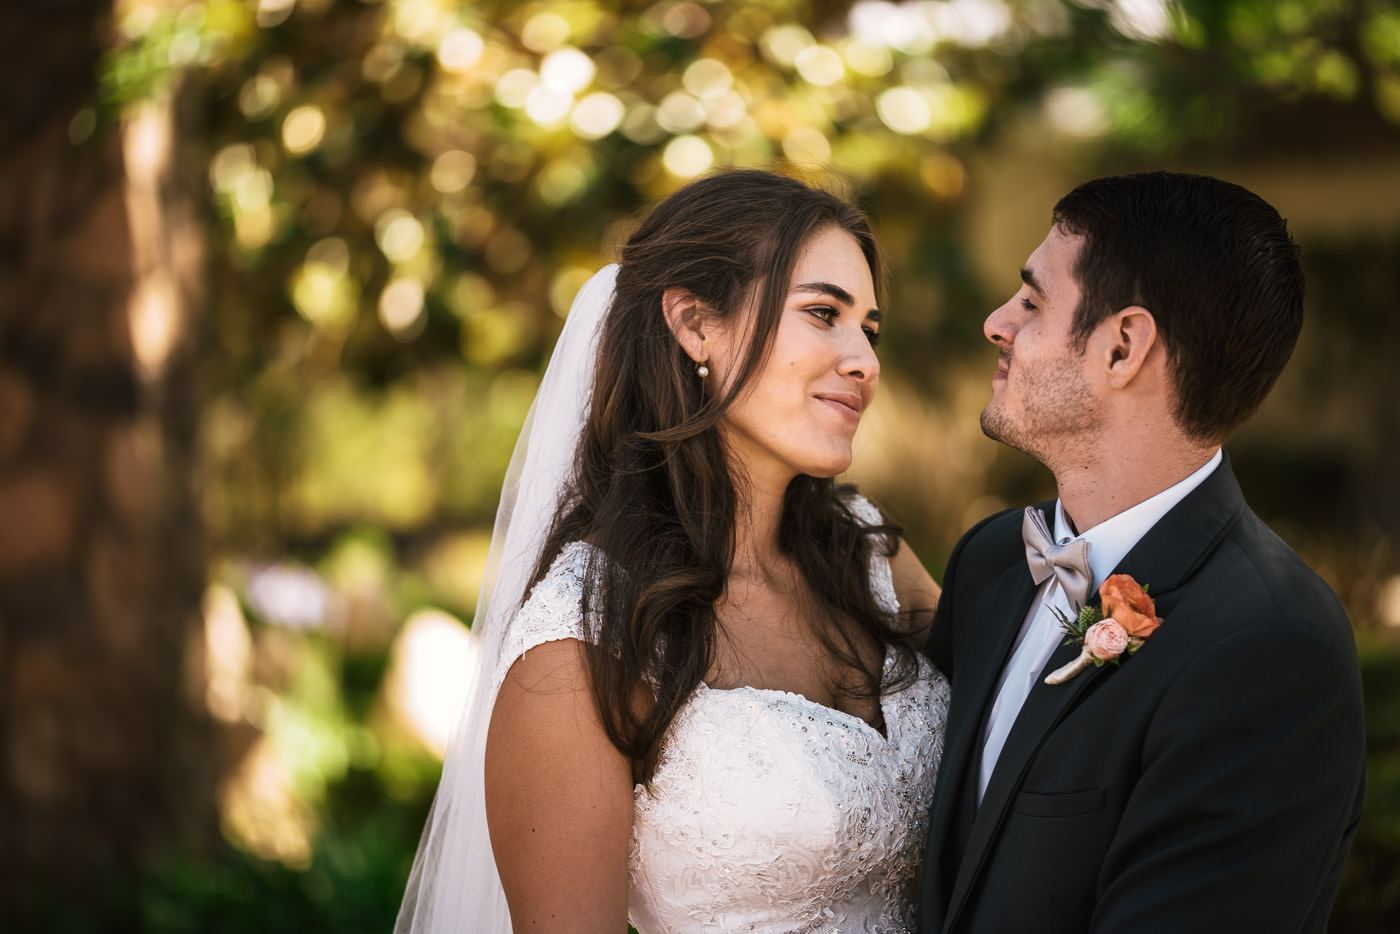 San Diego wedding photographer captures a beautiful portrait of a couple.